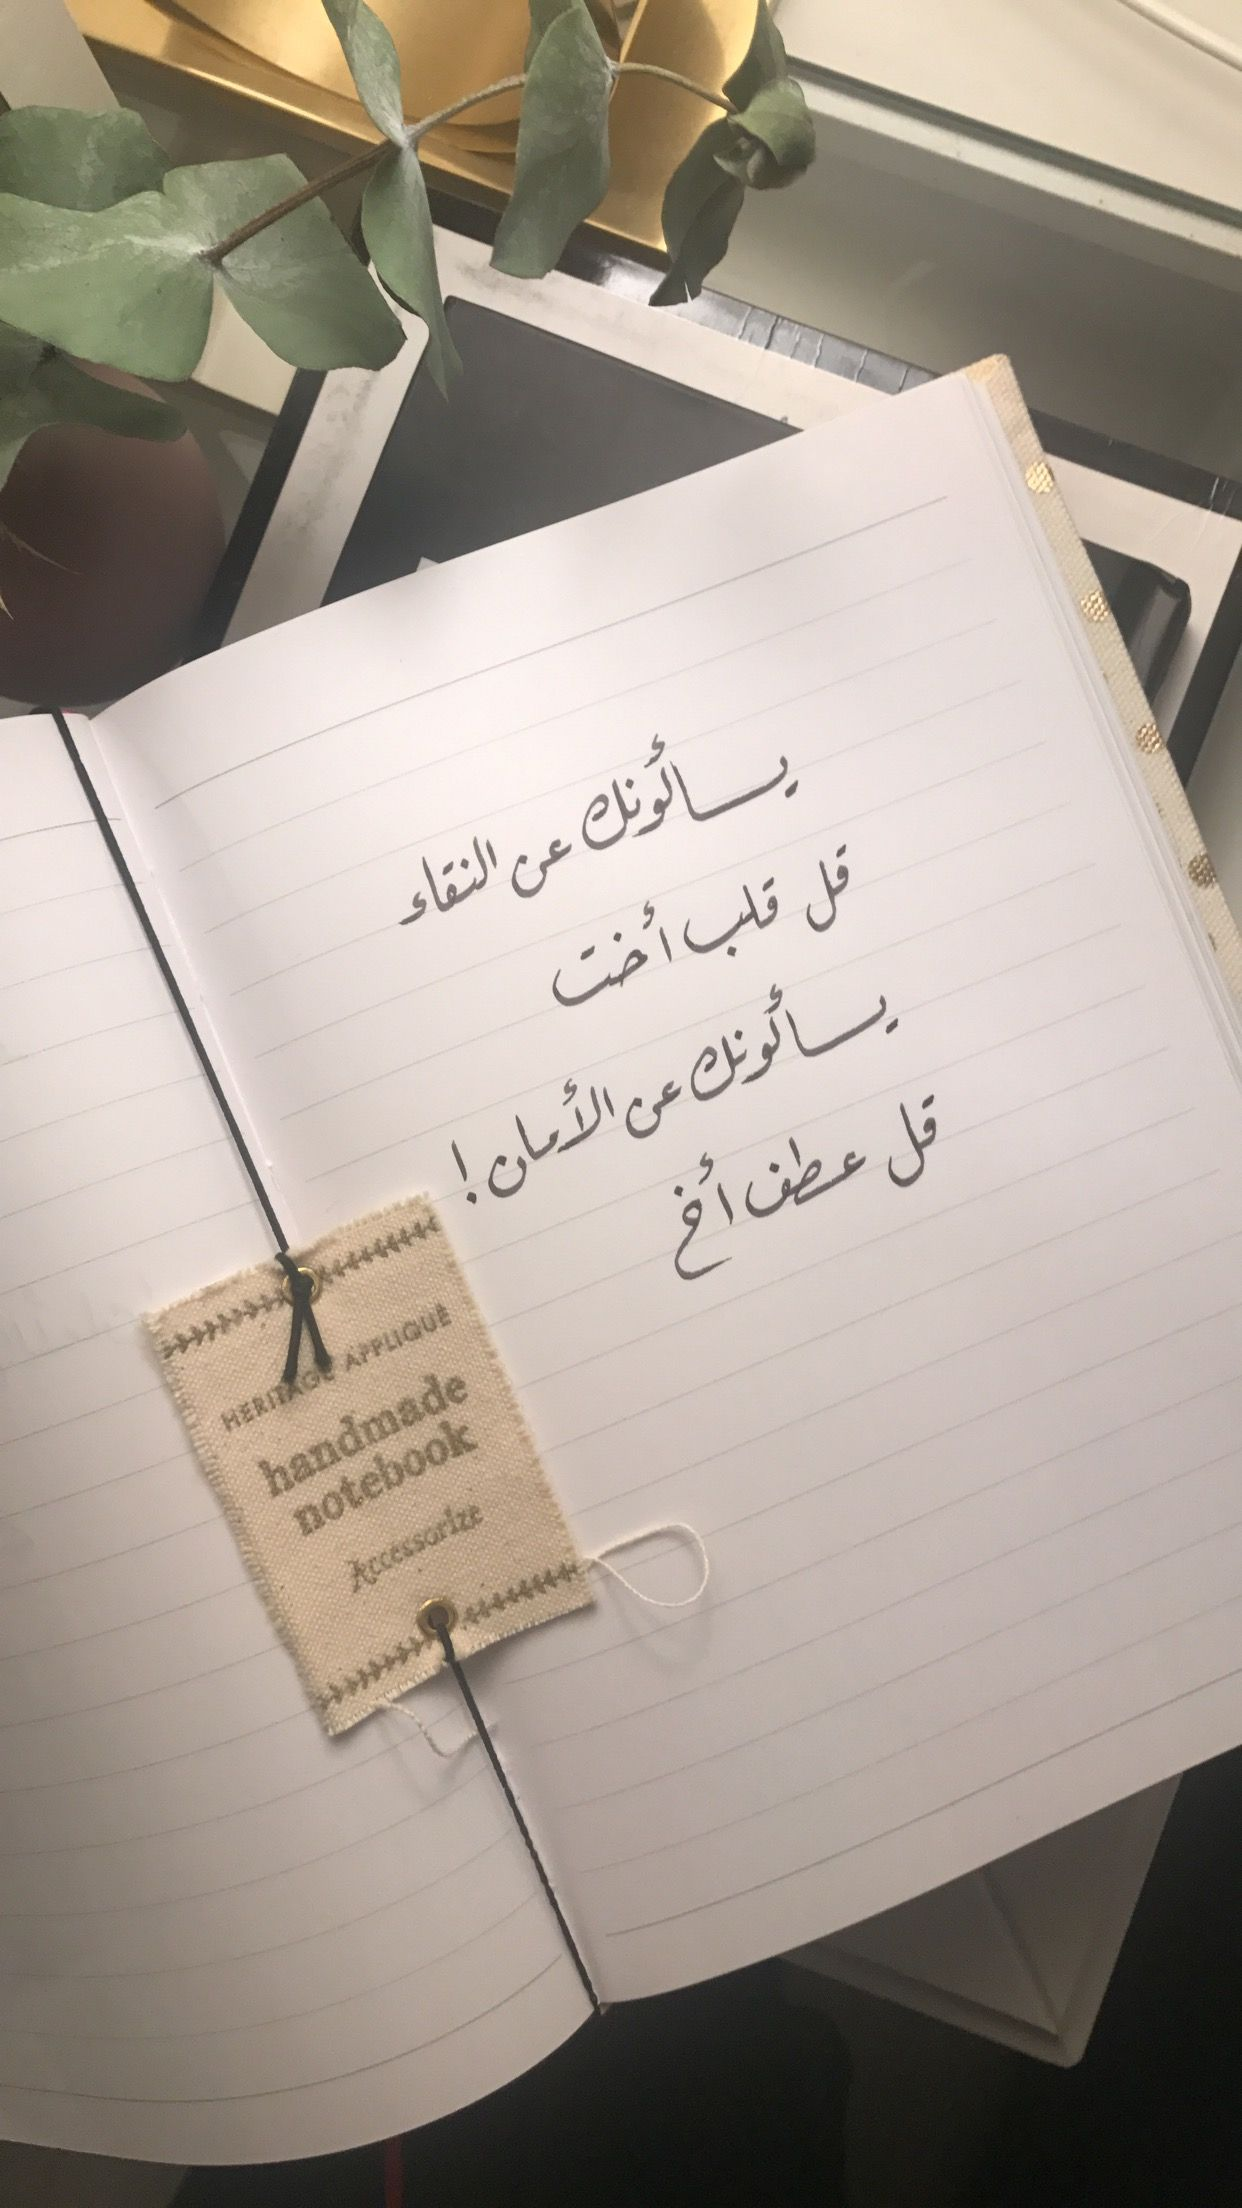 Pin By Ivan Zhukovskij On خط عربي Love Quotes Wallpaper Quotes For Book Lovers Words Quotes